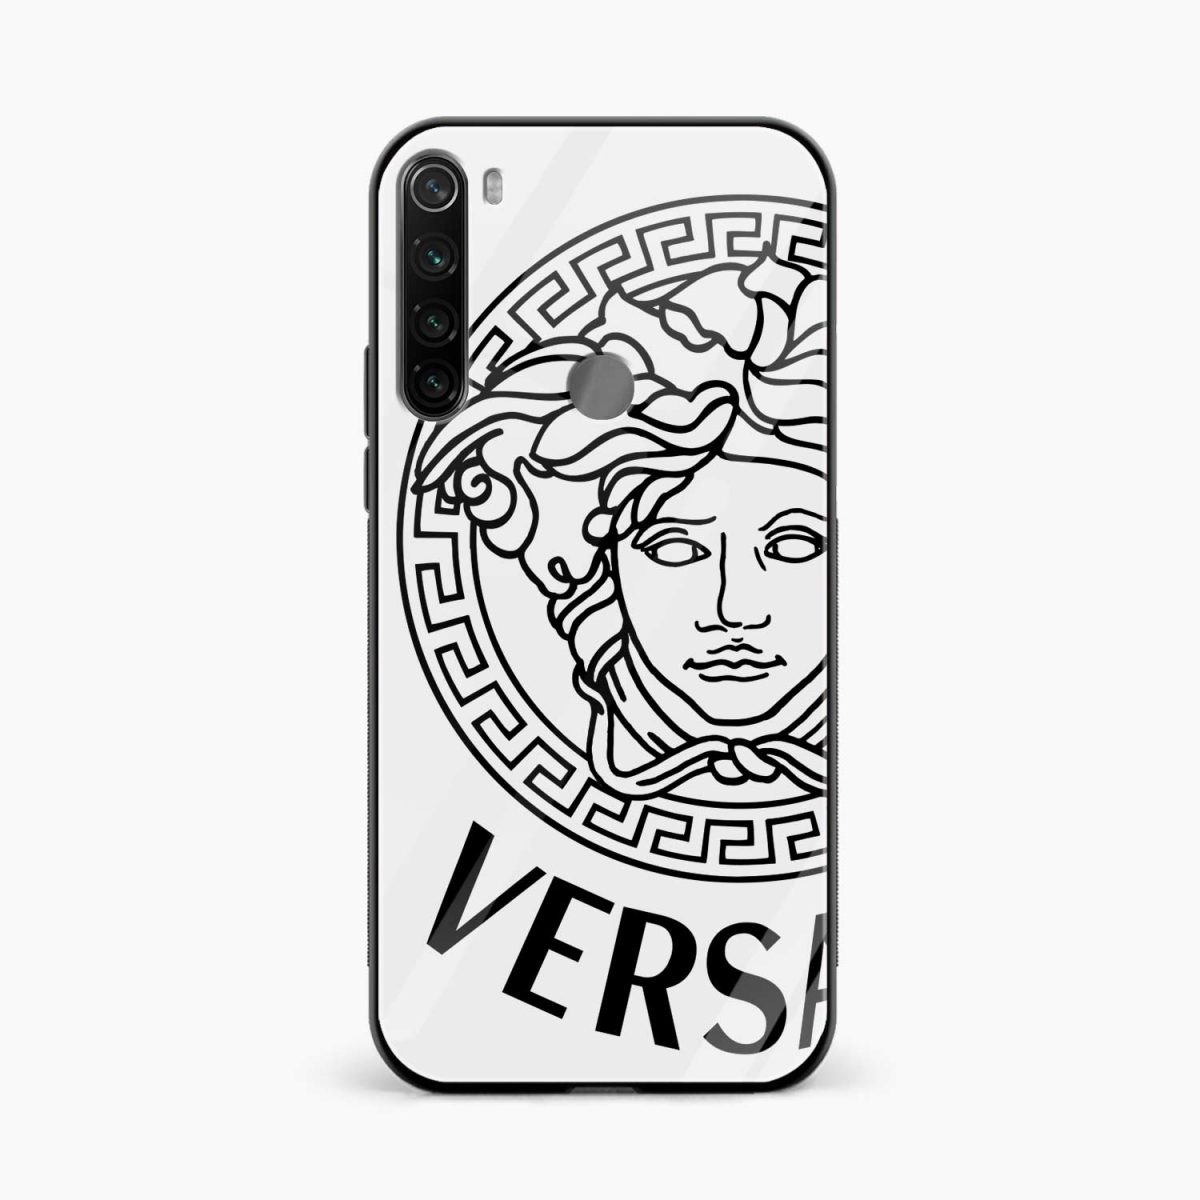 versace black white front view redmi note 8 back cover